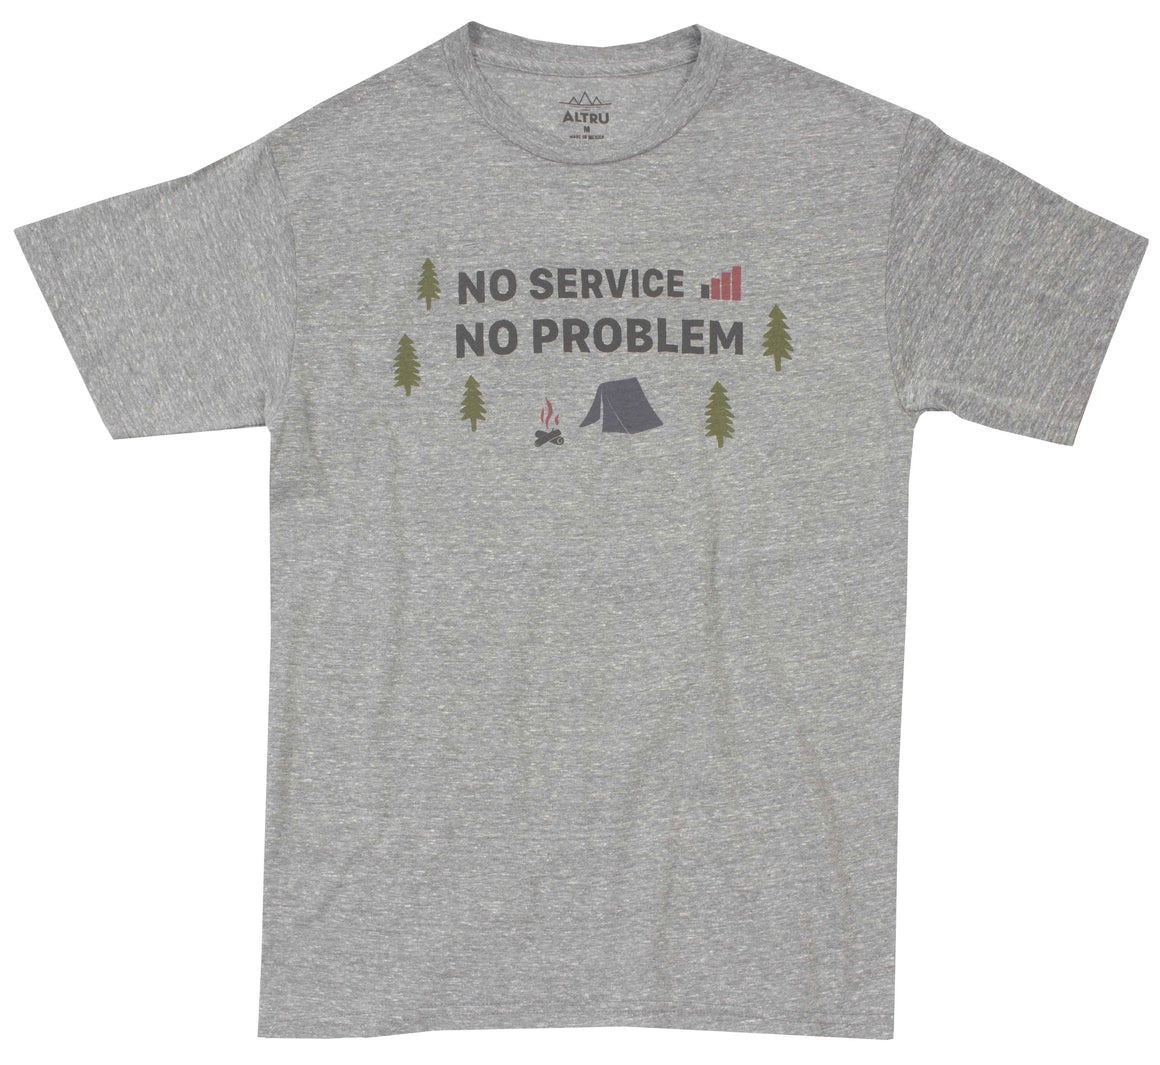 908299d2 No Service No Problem mens gray graphic tee by Altru Apparel front image